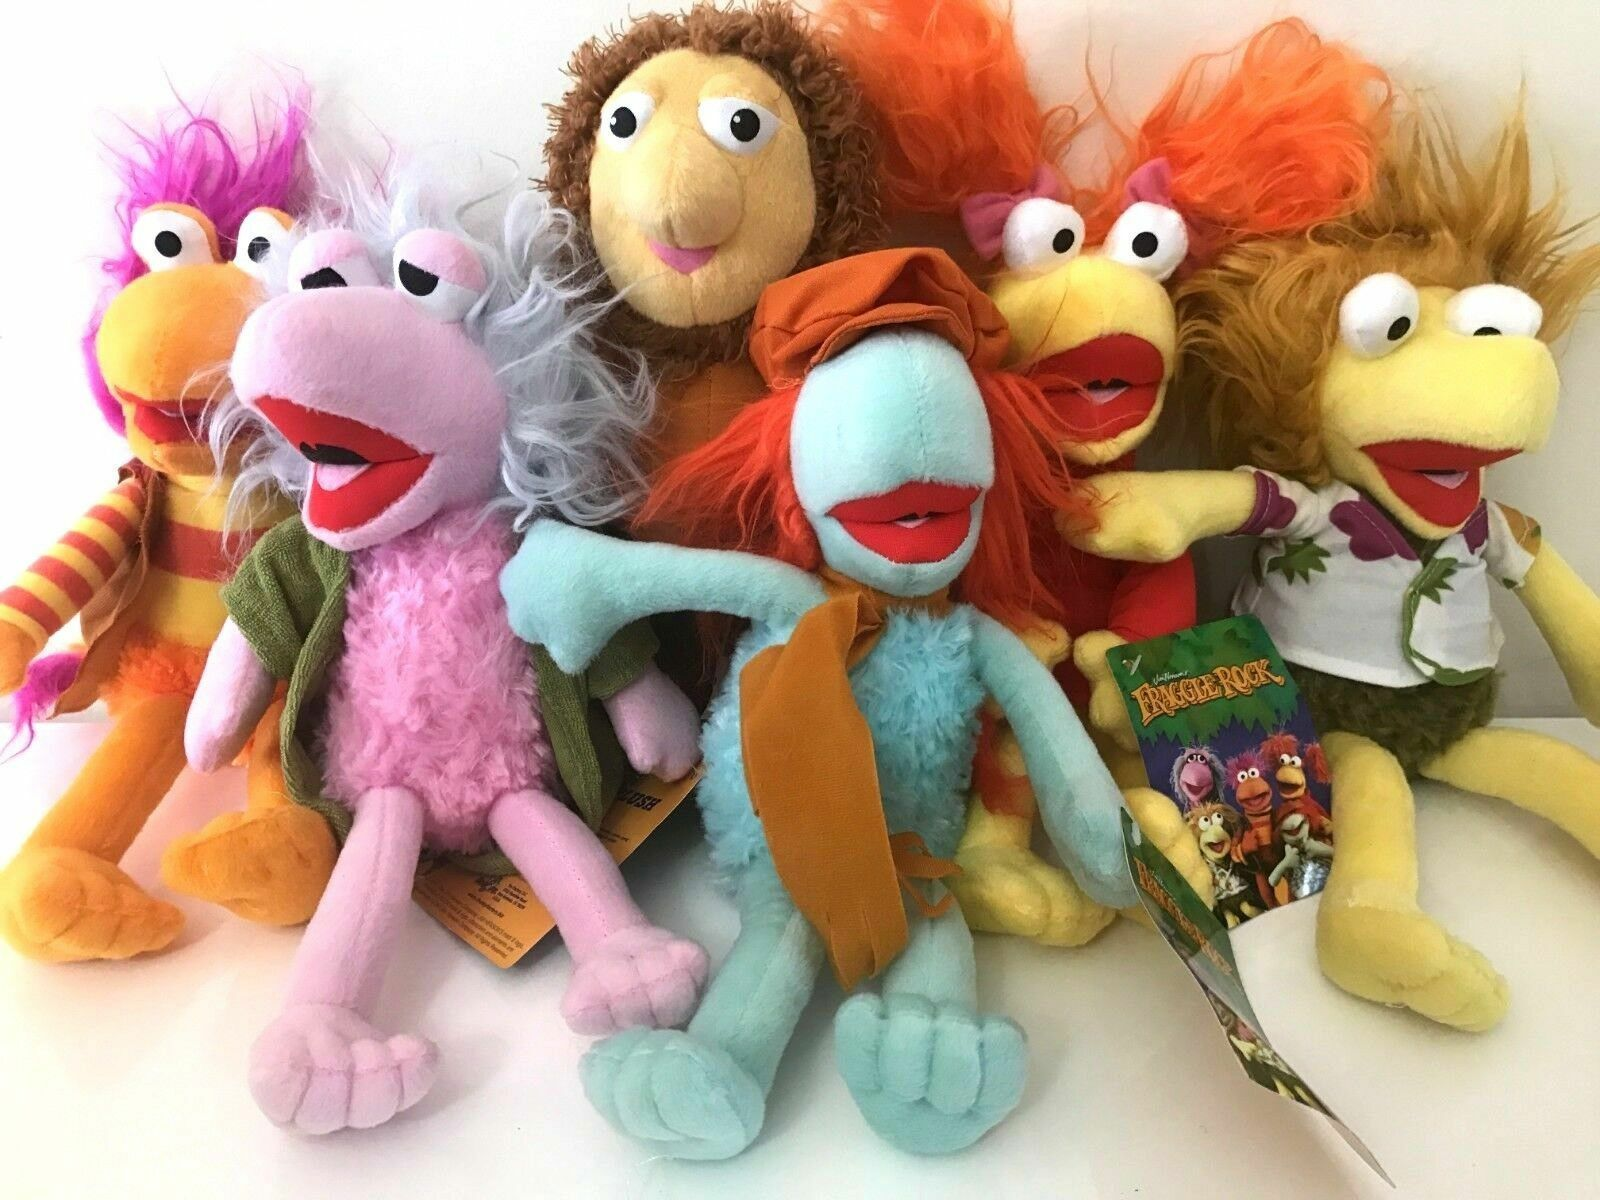 Set of 6 Fraggle Rock Plush Toys 10''.Wembley, Gorg, rot, Gobo,Mokey ,Boober NWT